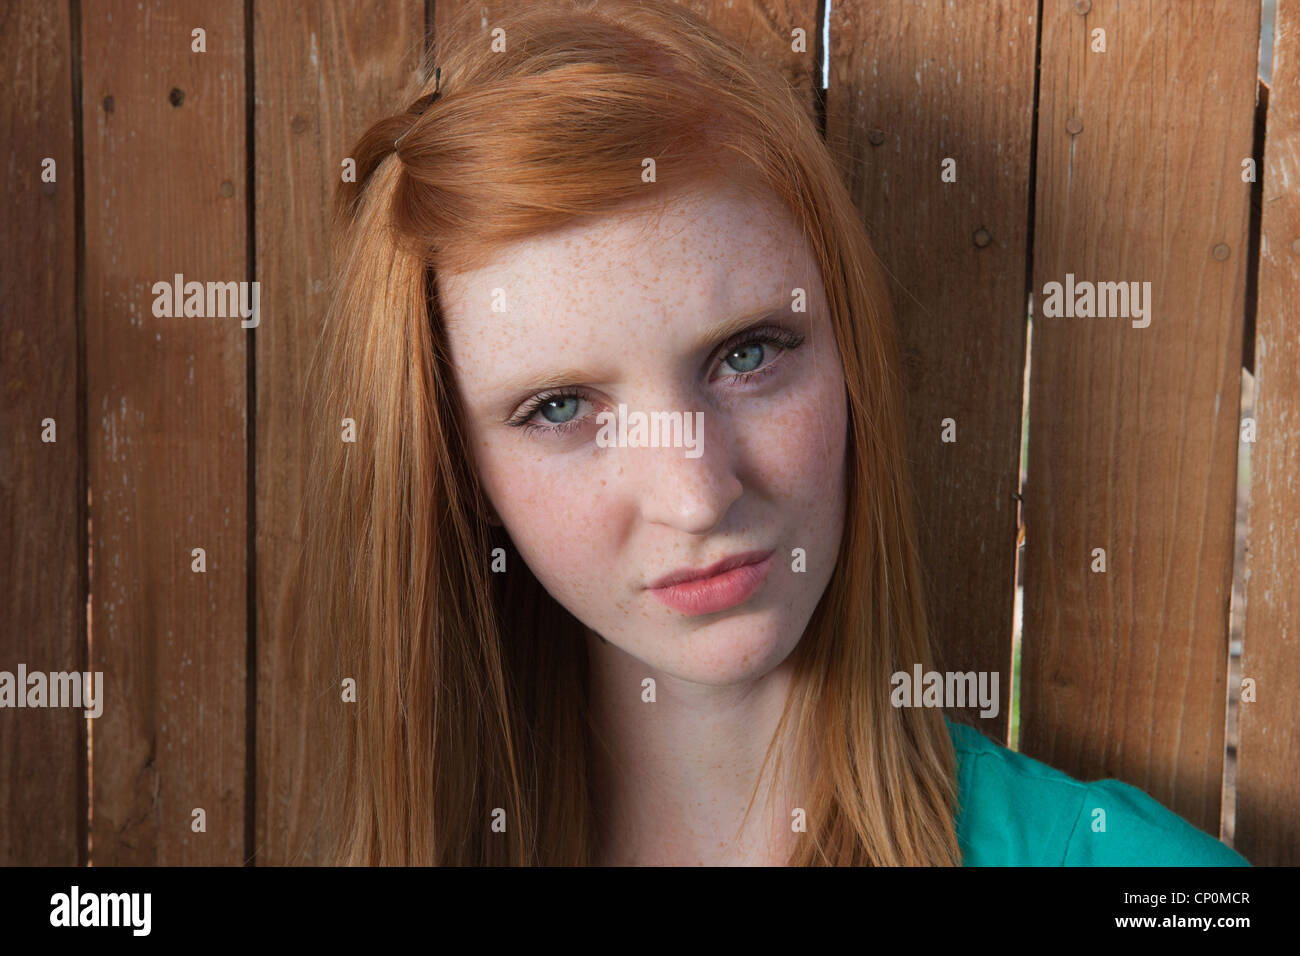 Fifteen year old girl looking confused. - Stock Image